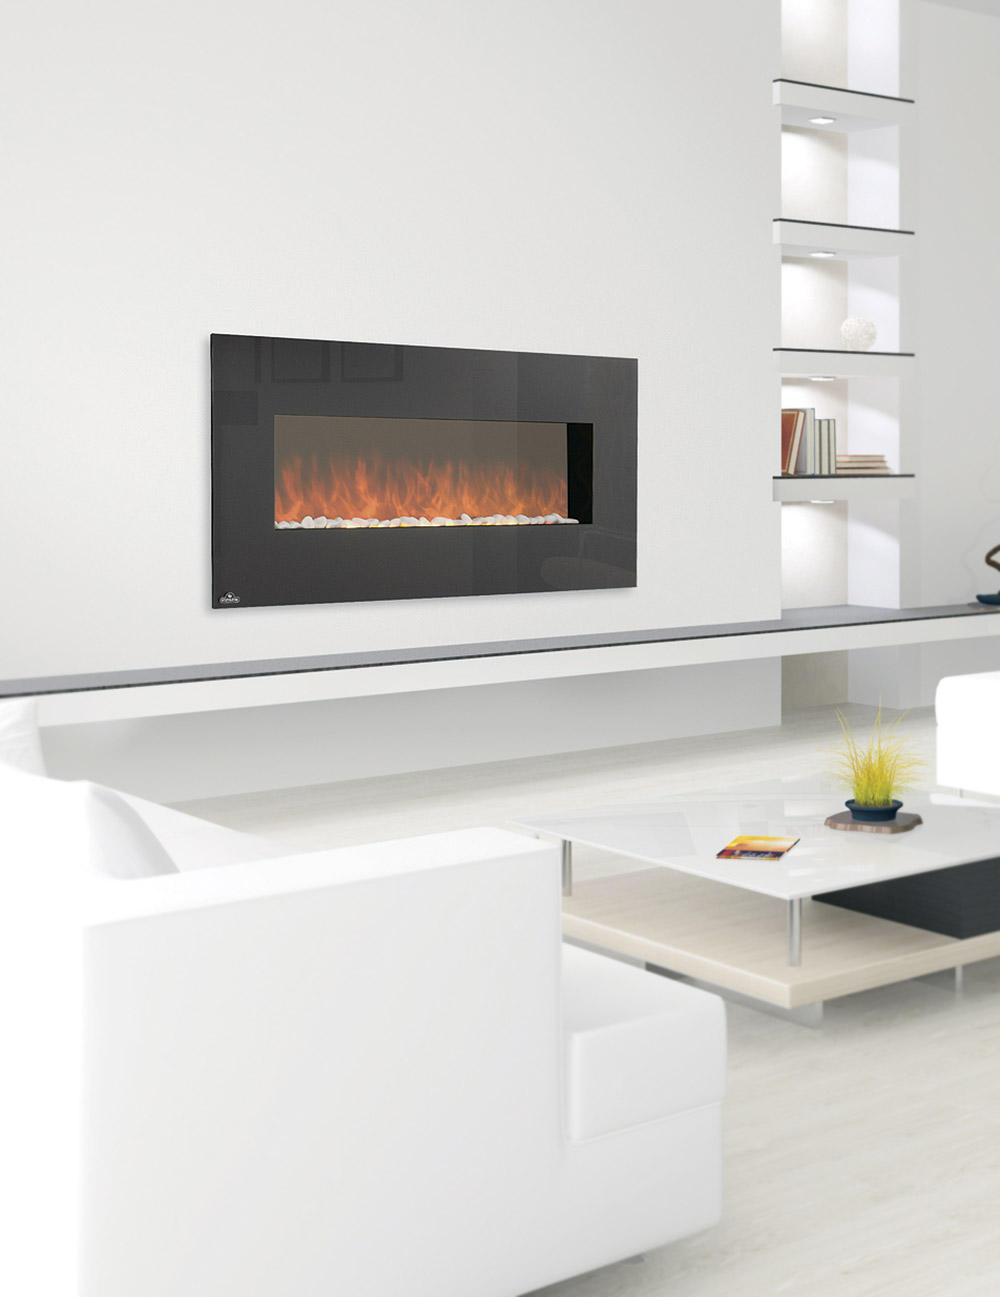 chic electric napoleon fireplace on white wall with book shelves plus white sofa set on white tile floor for family room decor ideas